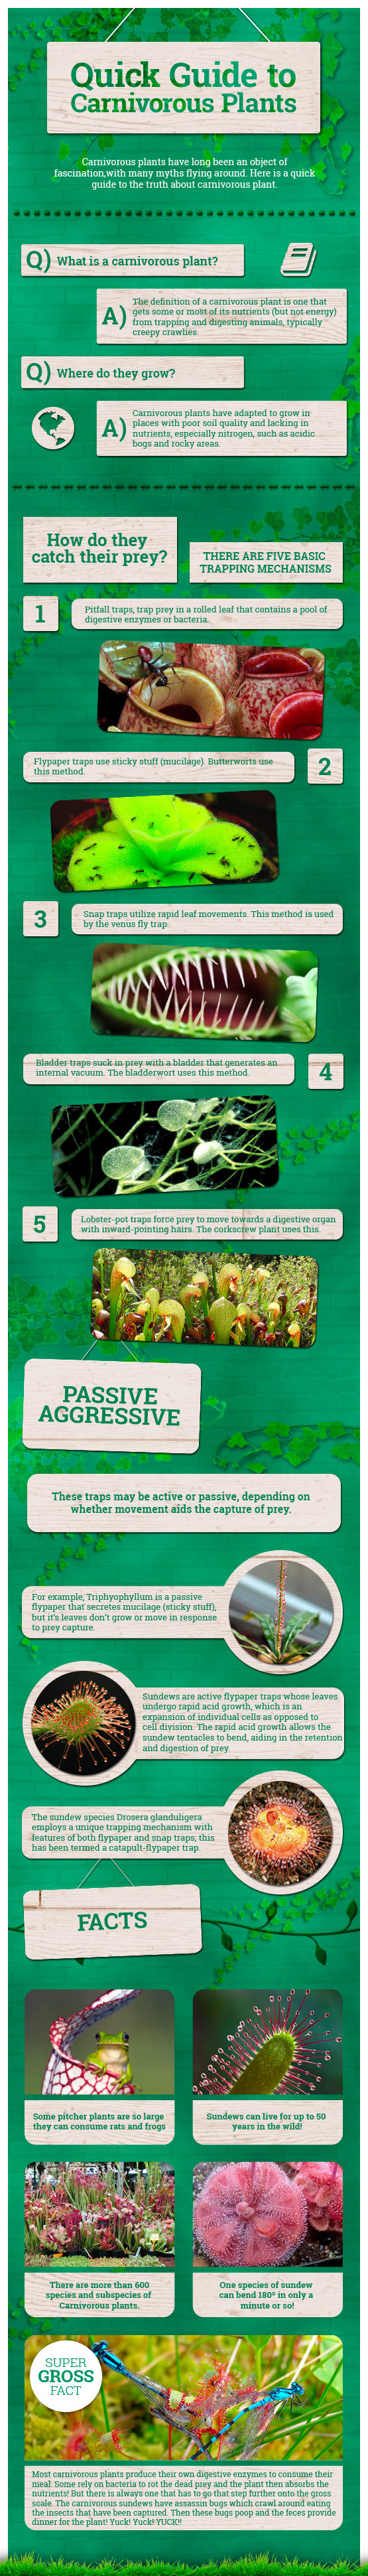 A Quick Guide to Carnivorous Plants